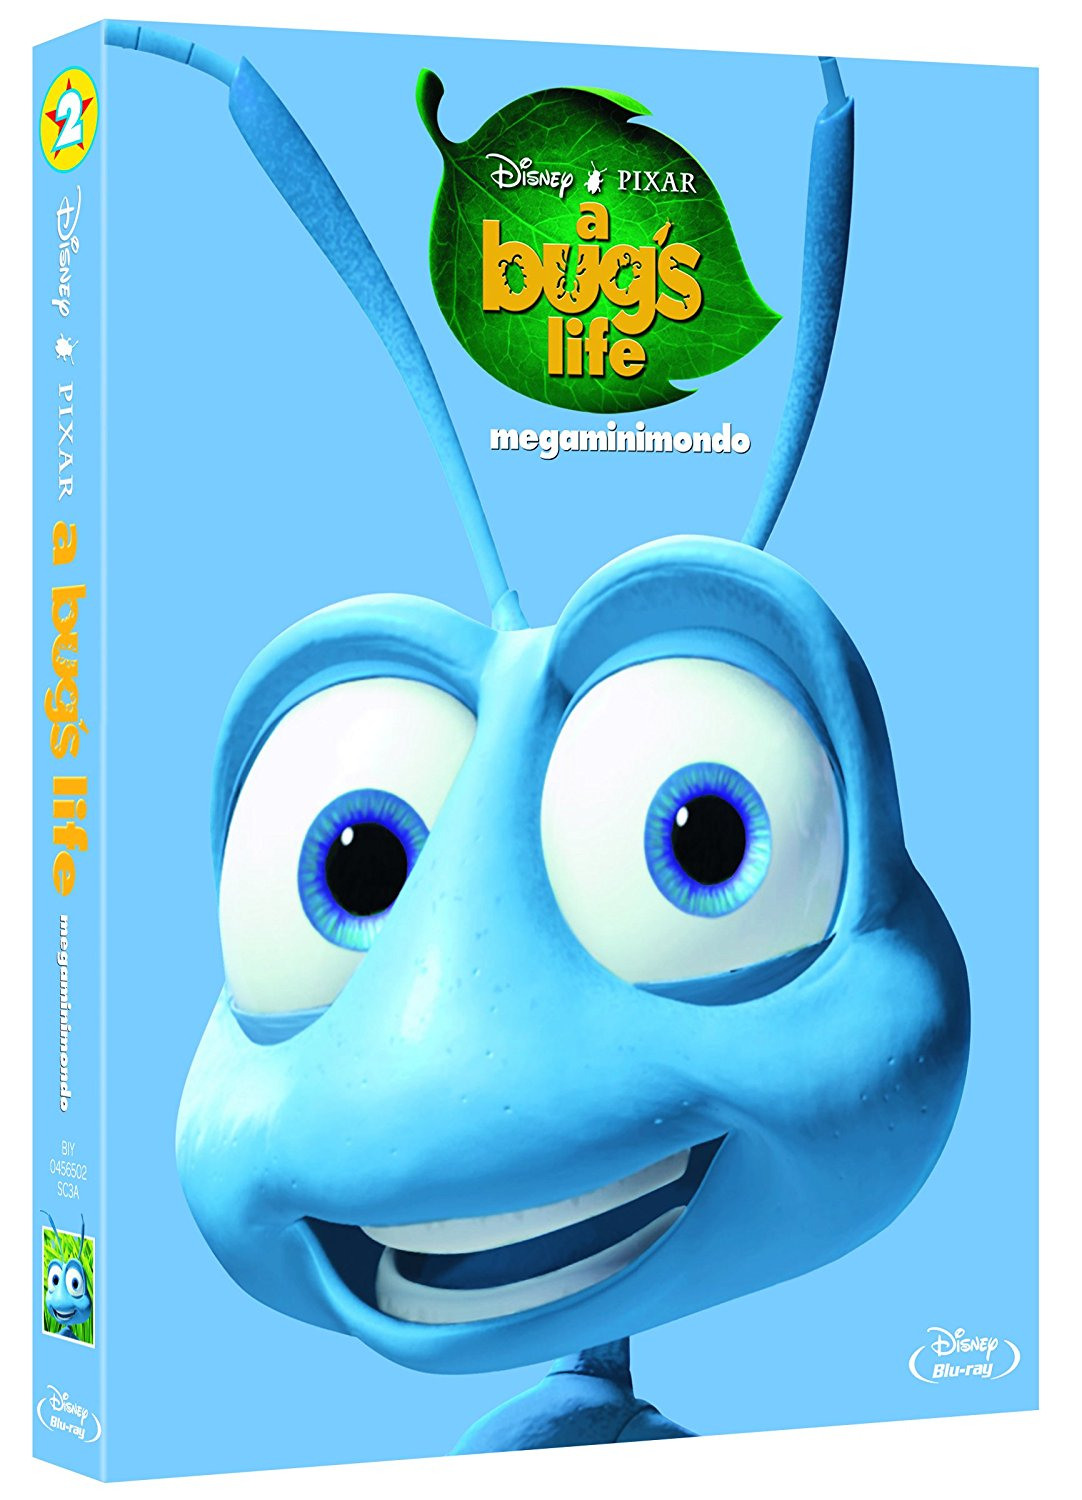 A BUG'S LIFE (A) (SE) BLUE RAY